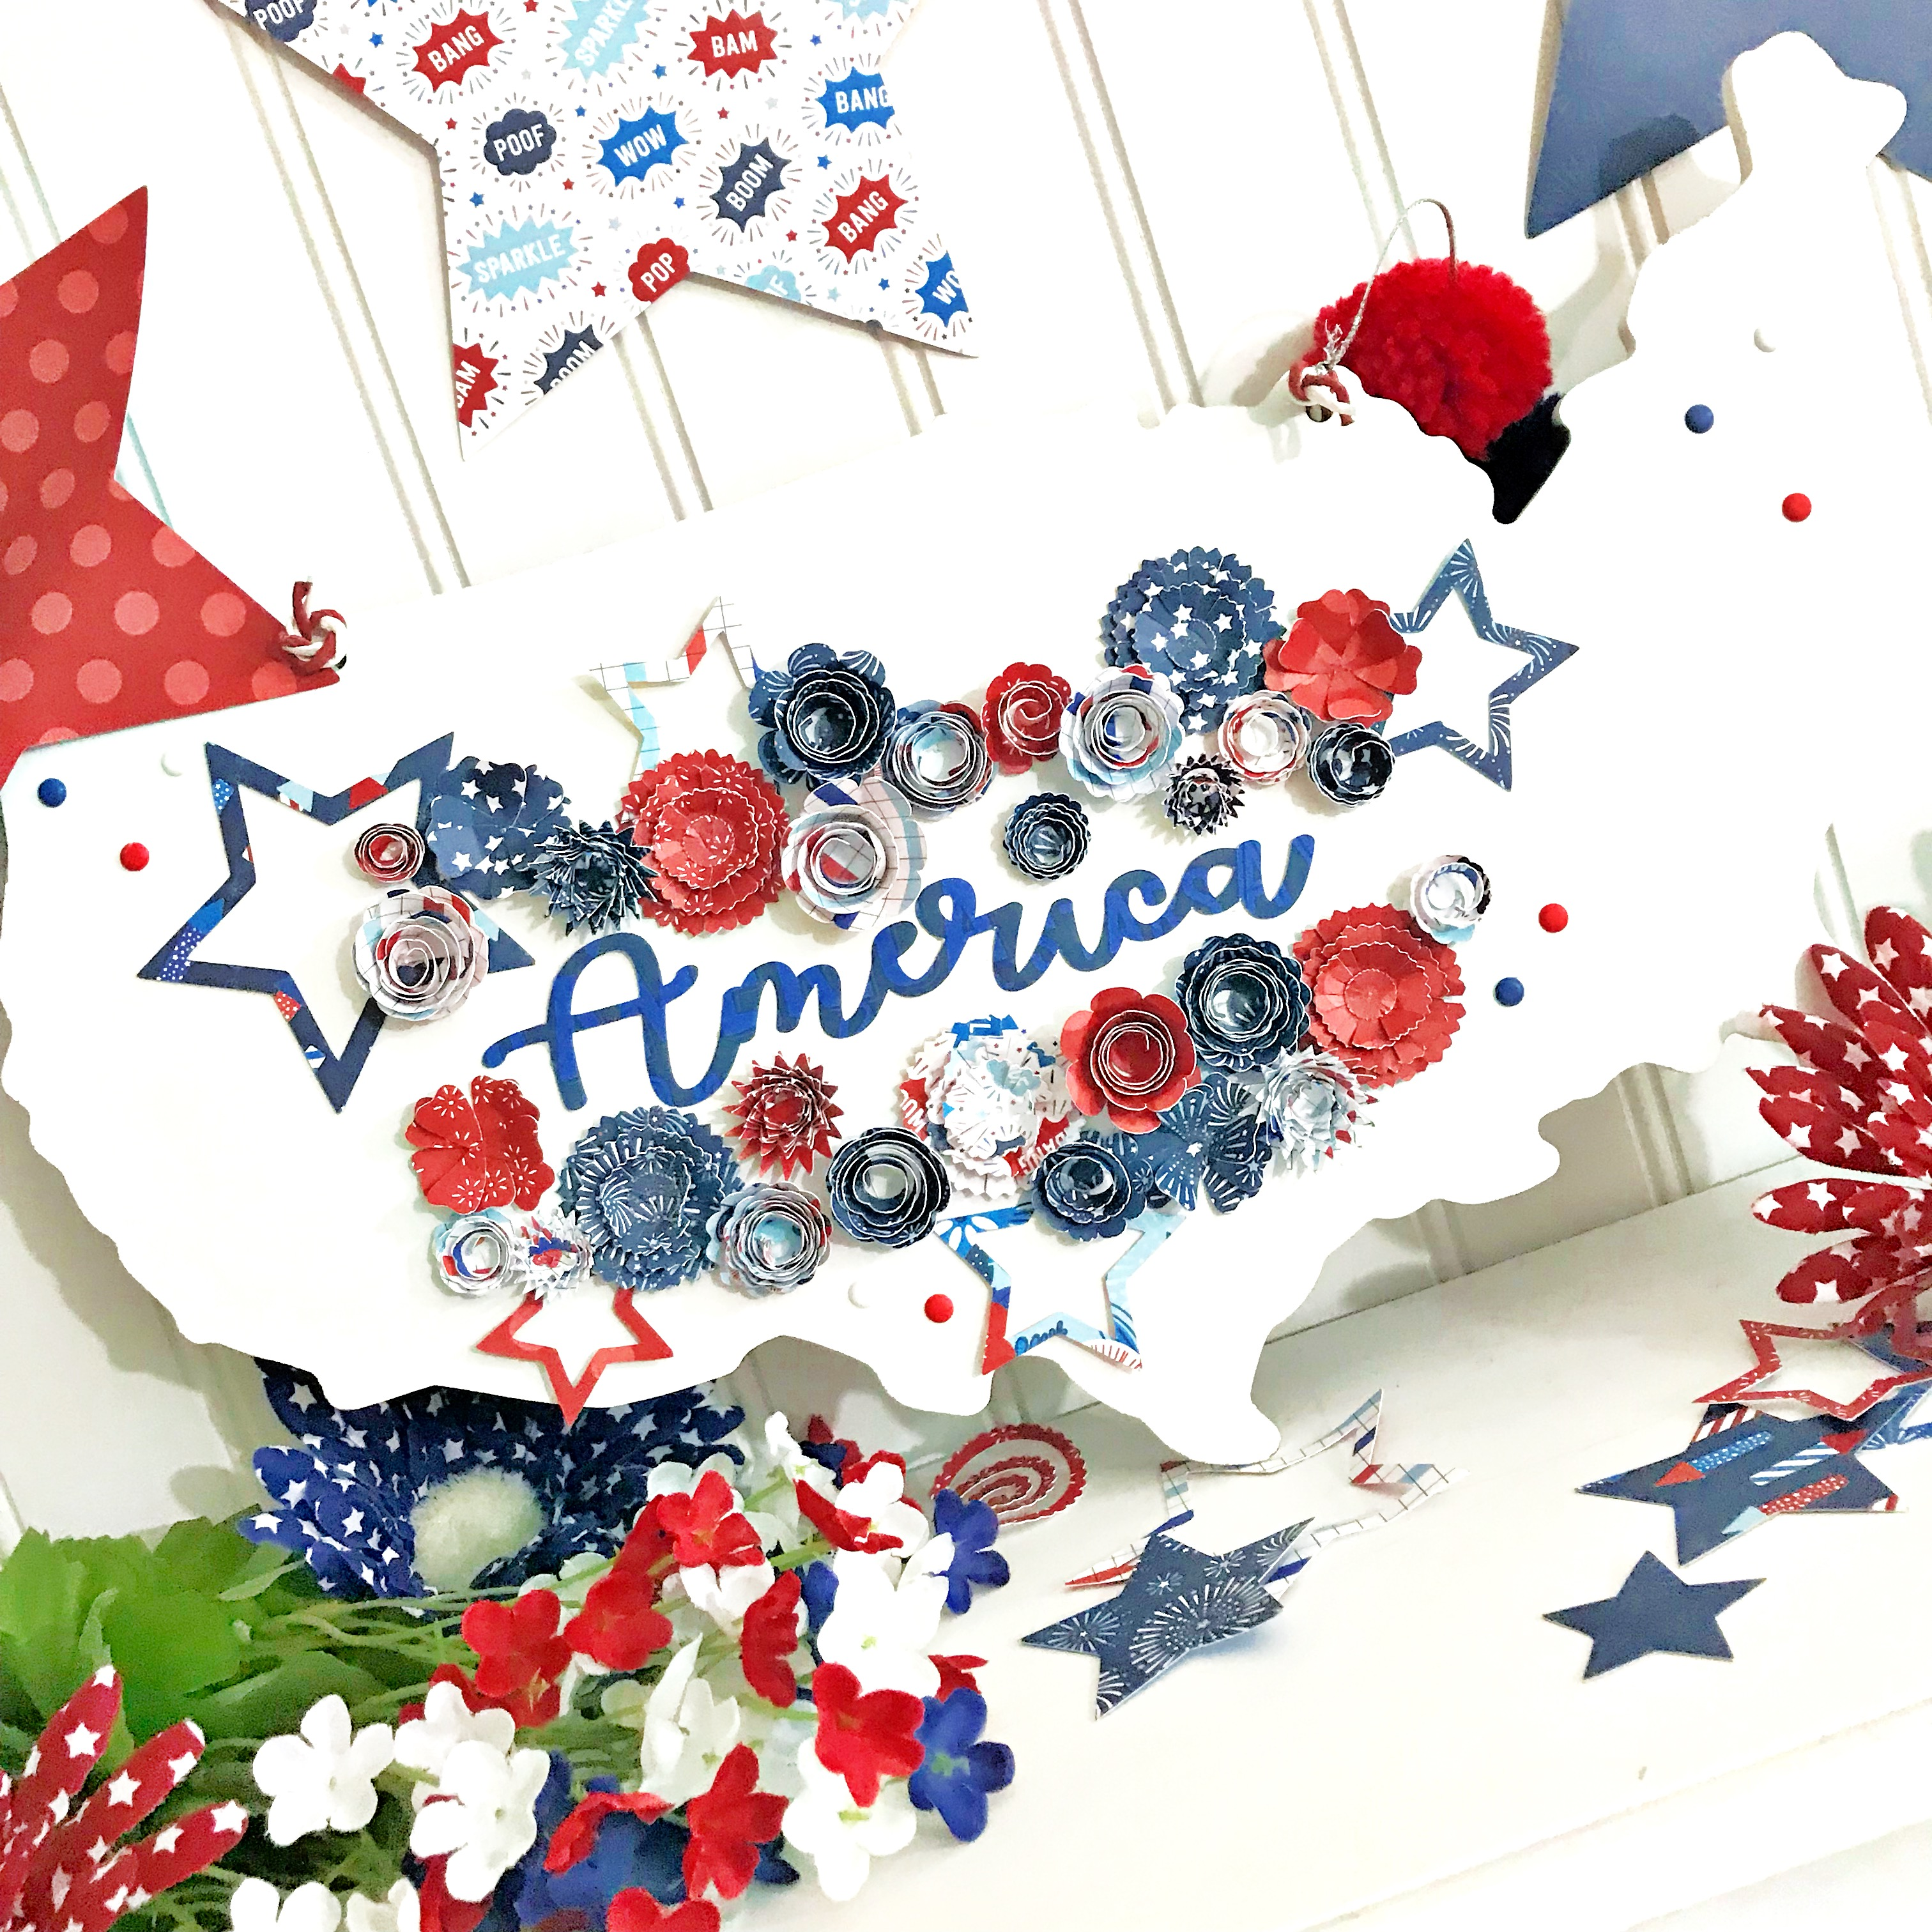 Pebbles Patriotic Home Decor by @HeatherLeopard using @pebblesinc #LandThatILove collection #madewithpebbles #homedecor #patriotic #stars #america #4thofJuly